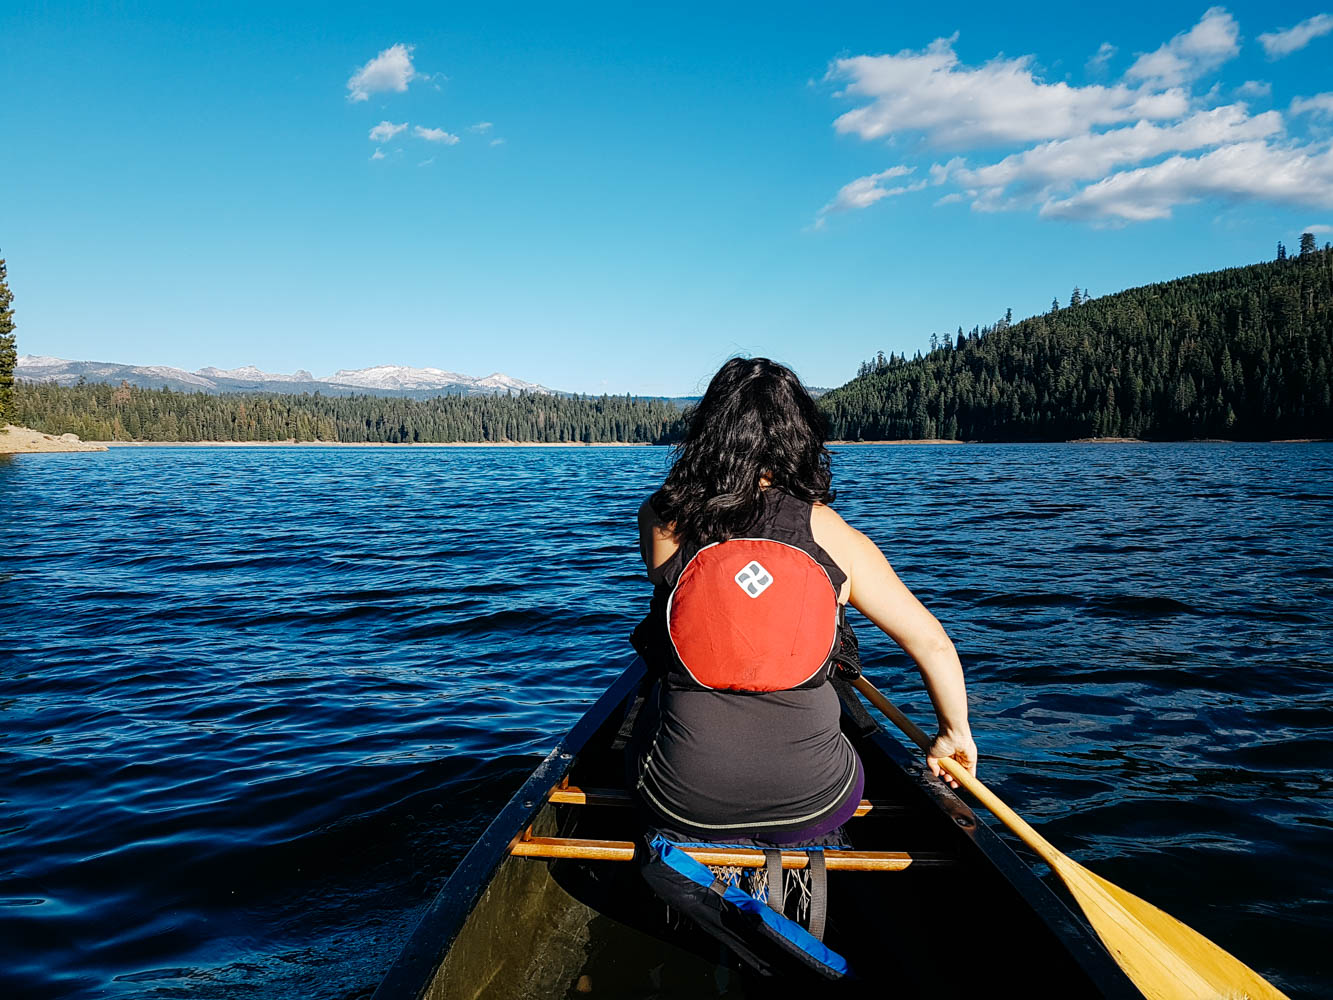 We also canoed on the beautiful lake. There is already snow on the mountain tops!